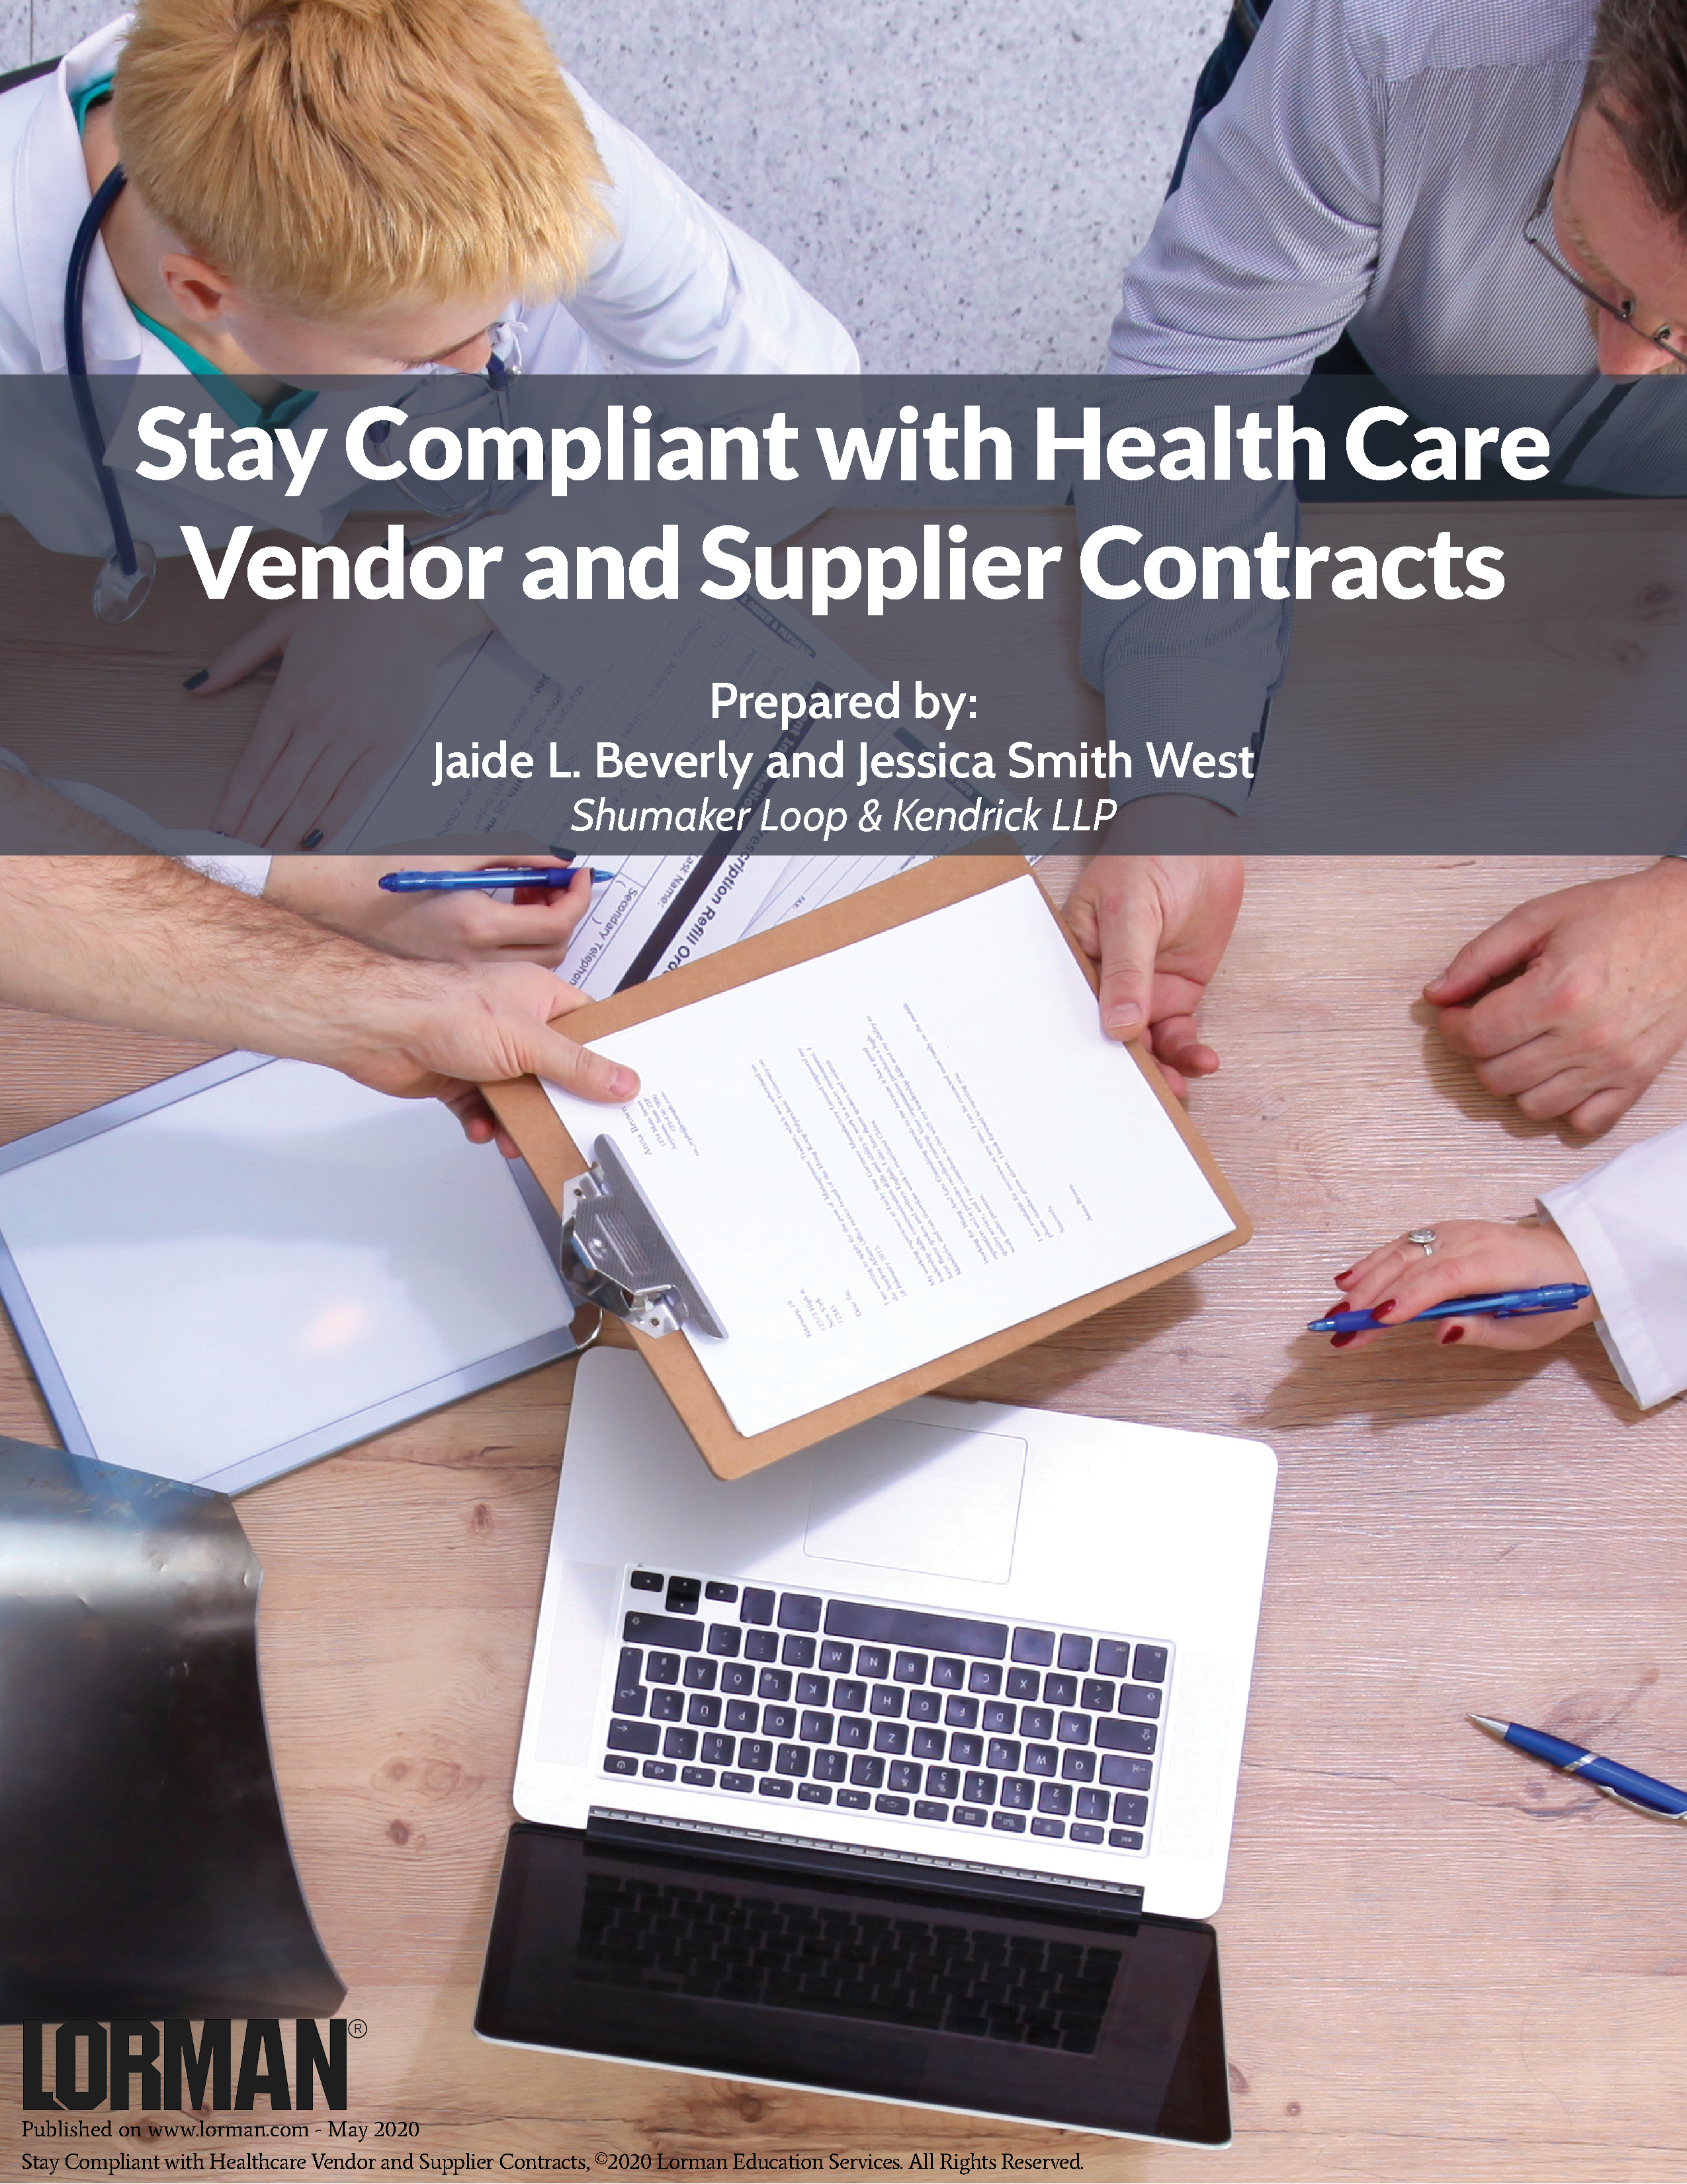 Stay Compliant with Health Care Vendor and Supplier Contracts